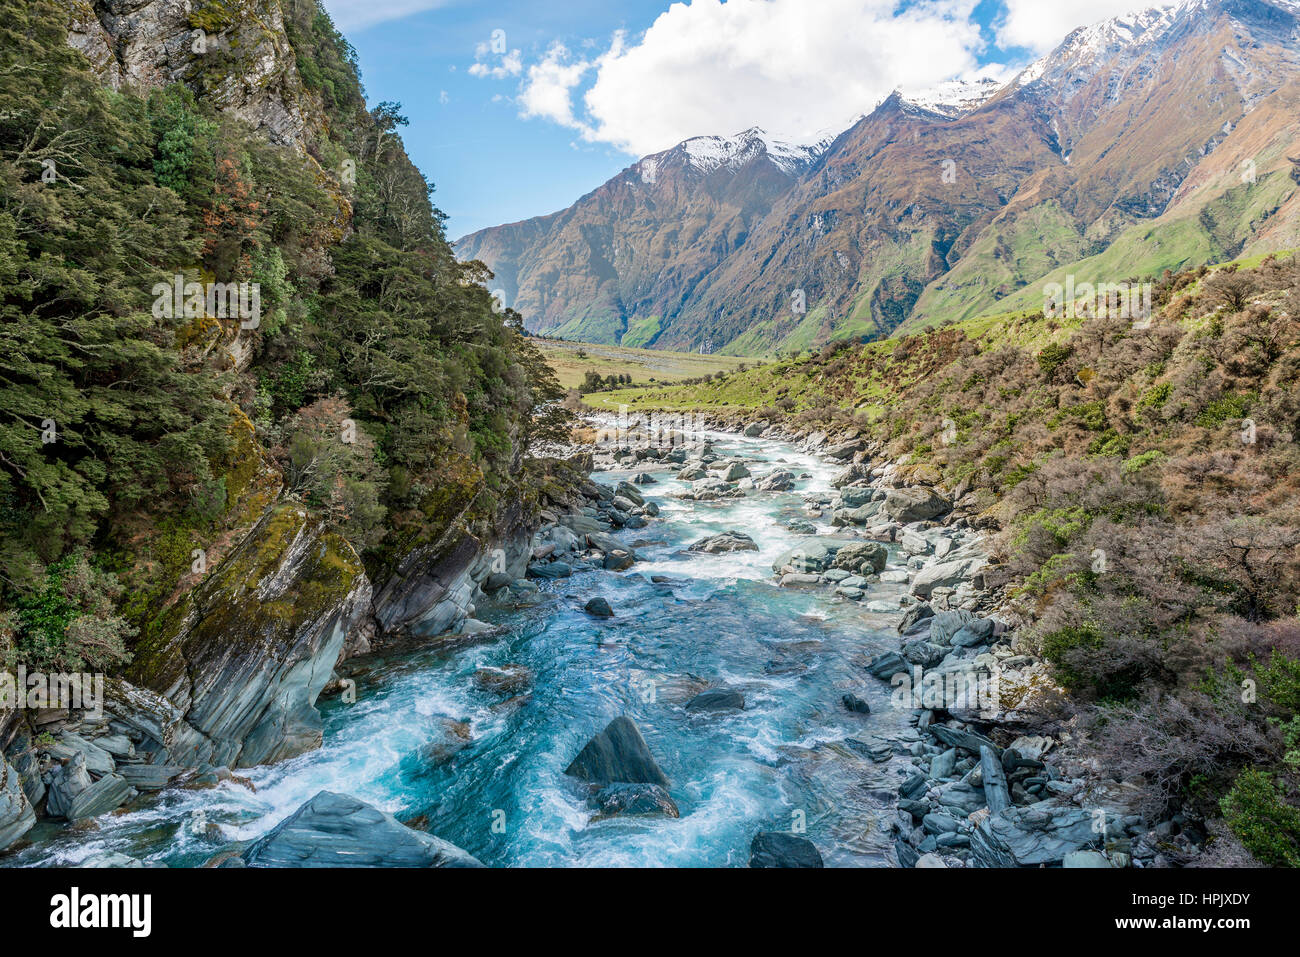 Matukituki River, river flows through the valley, Mount Aspiring National Park, Otago, Southland, New Zealand - Stock Image